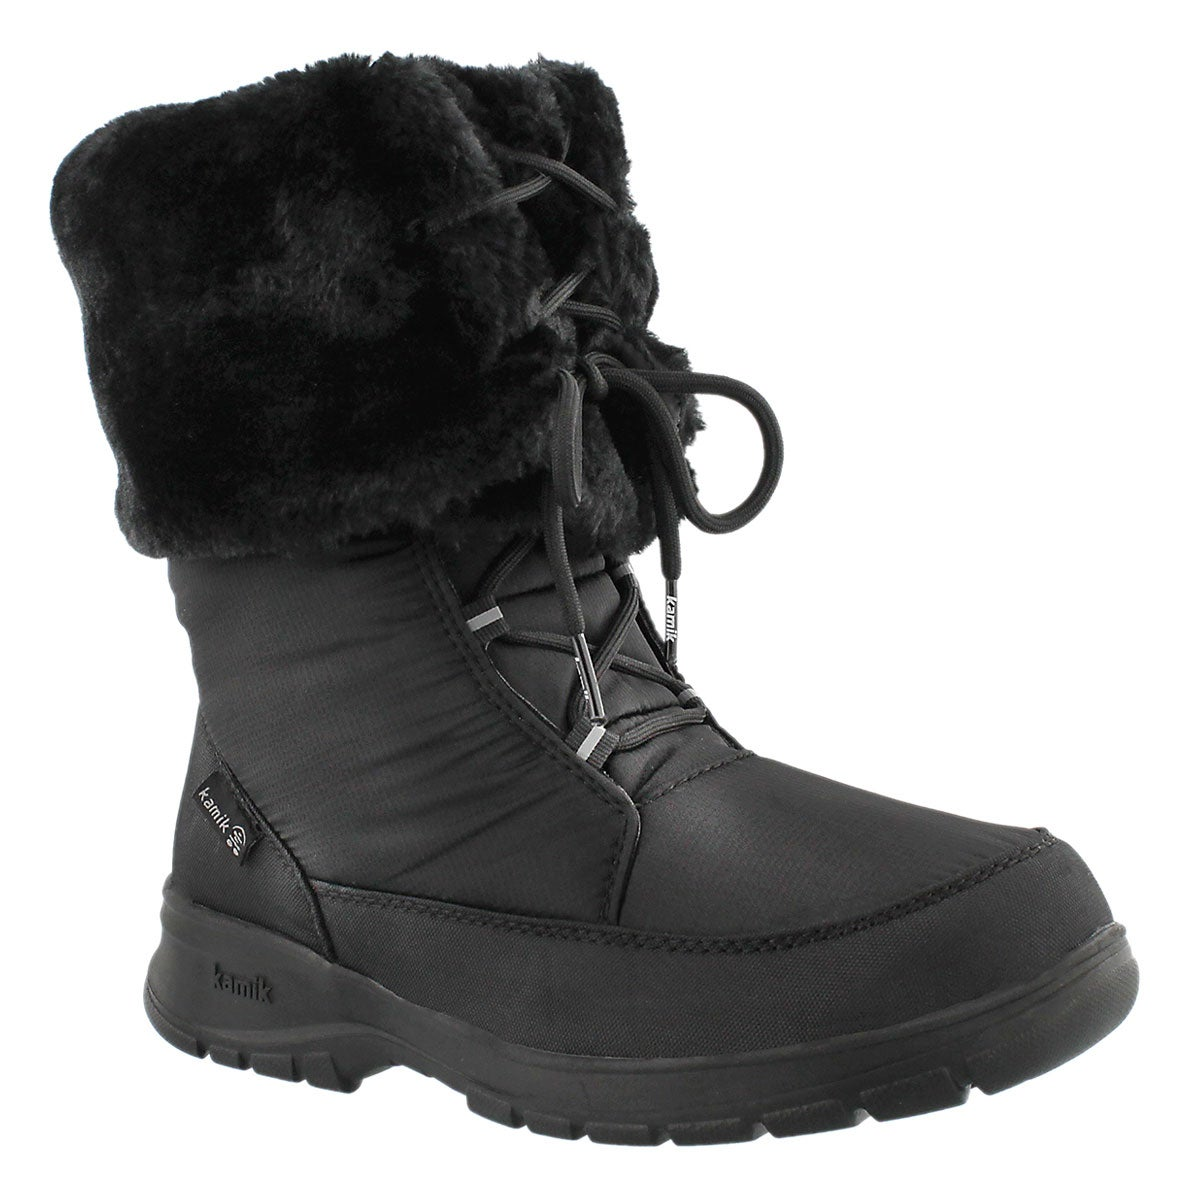 Lds Seattle blk lace-up winter boot